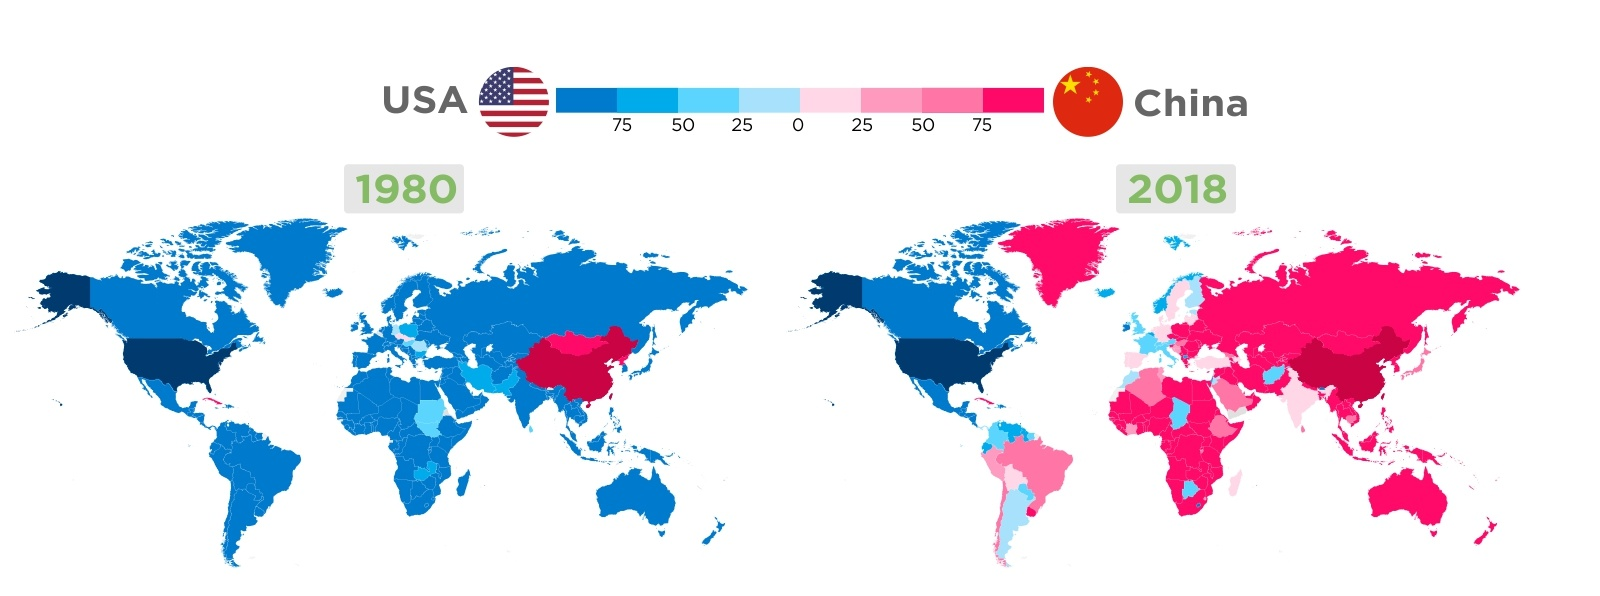 Mapping The World's Trade Domination: USA & China's Clout Since 1980